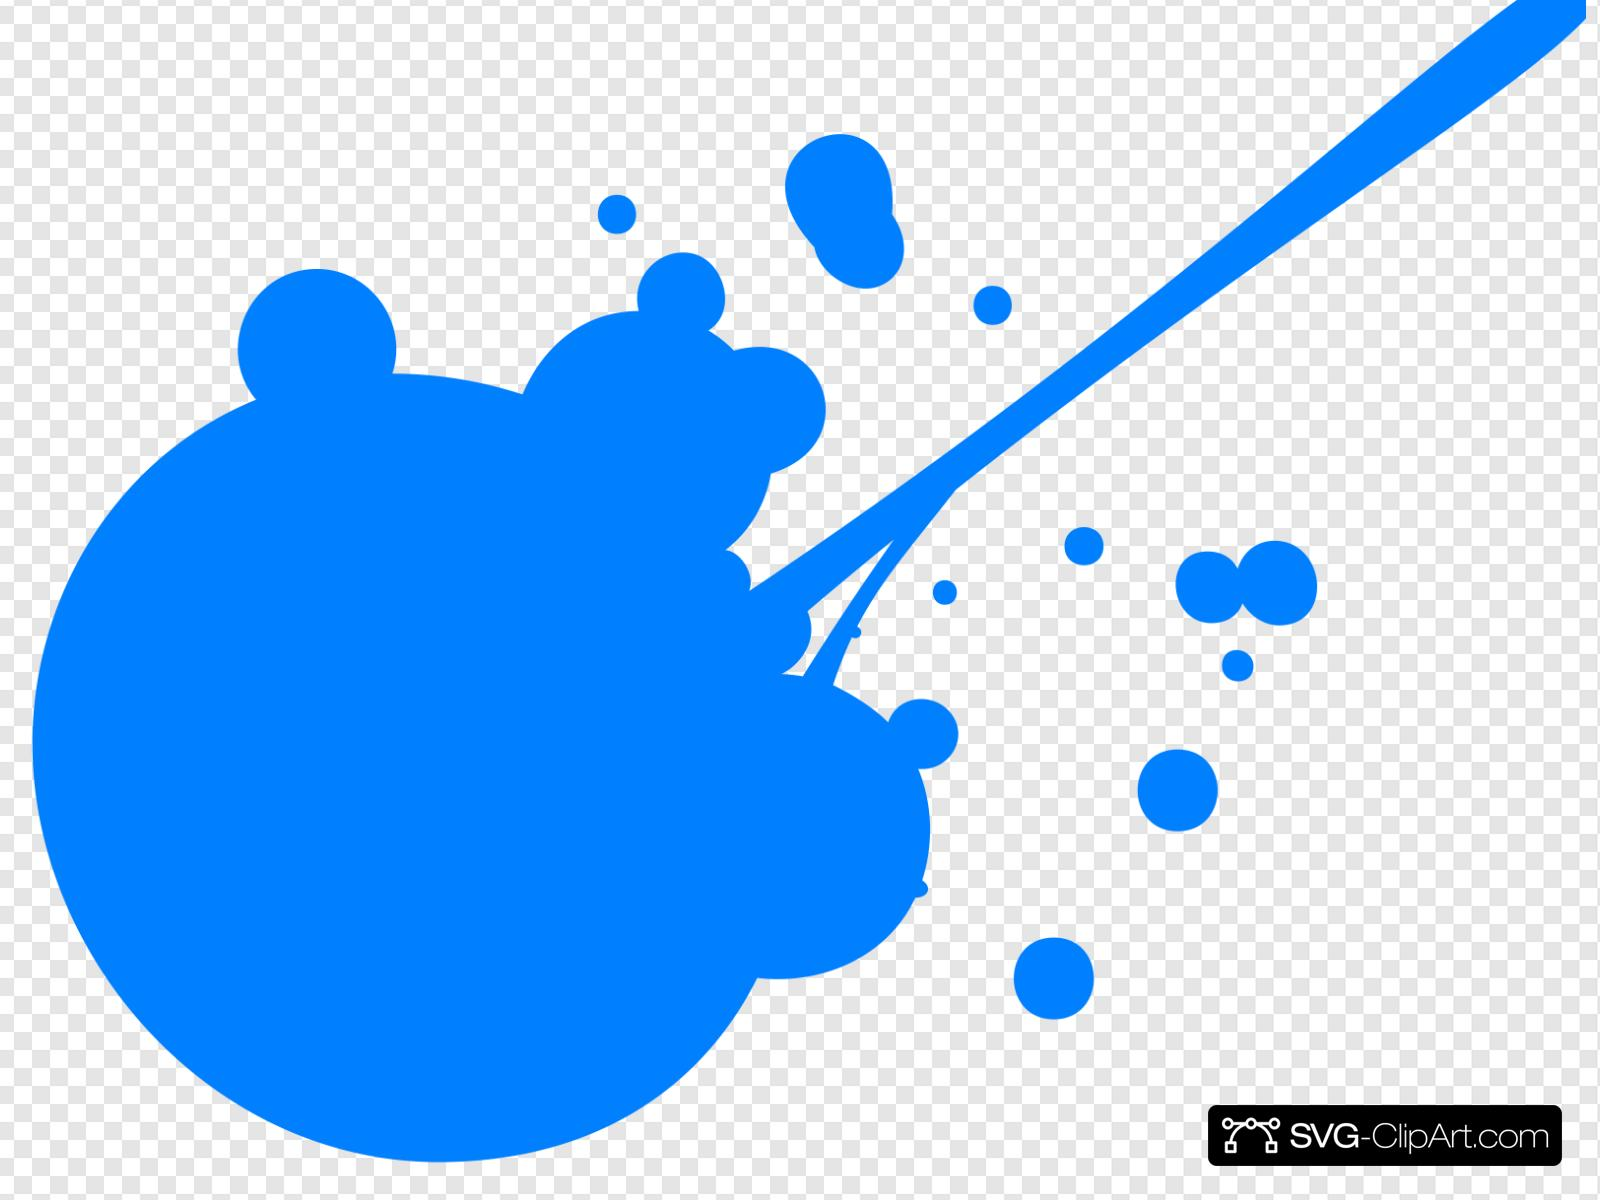 Blue Paint Splatter Clip art, Icon and SVG.